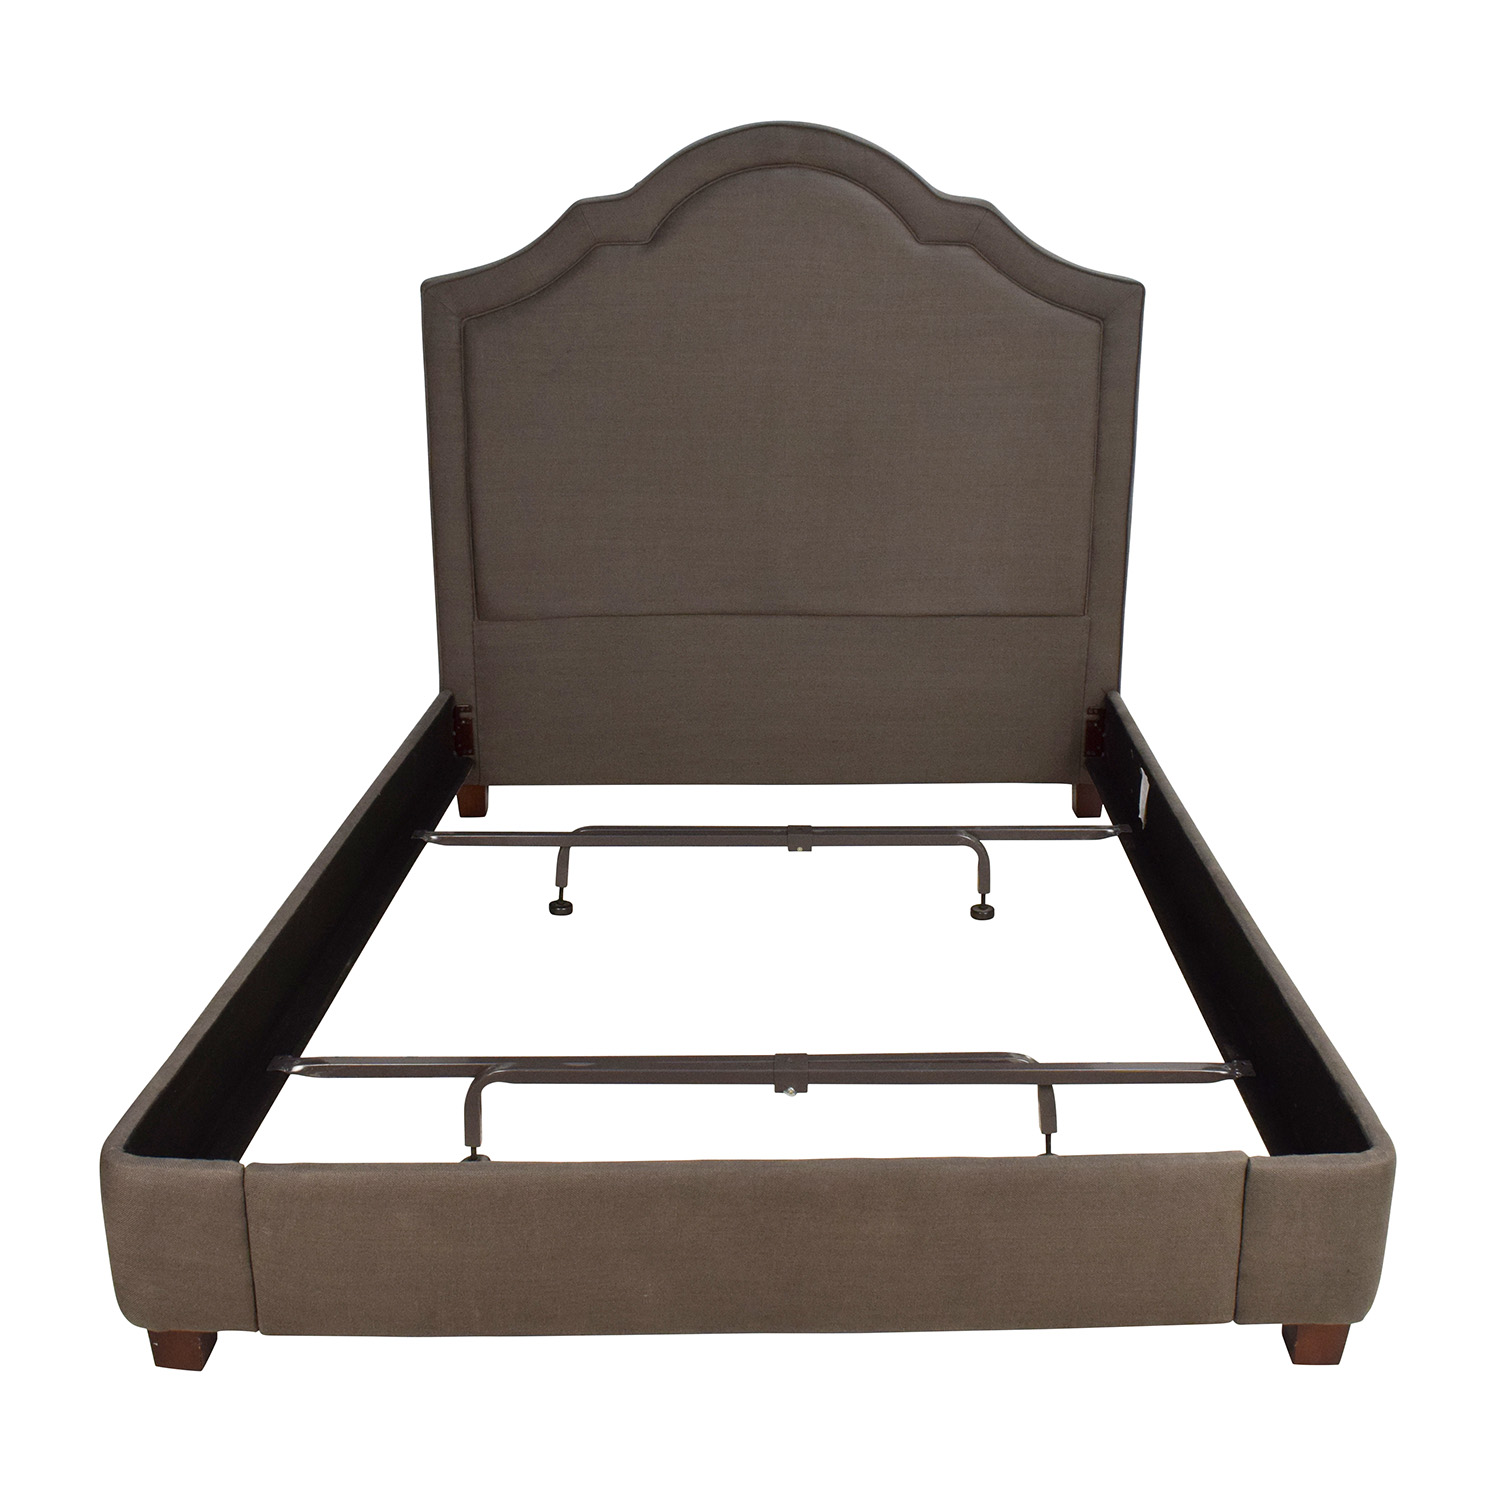 Restoration Hardware Restoration Hardware Jameson Queen Bed Belgian Linen Charcoal nj